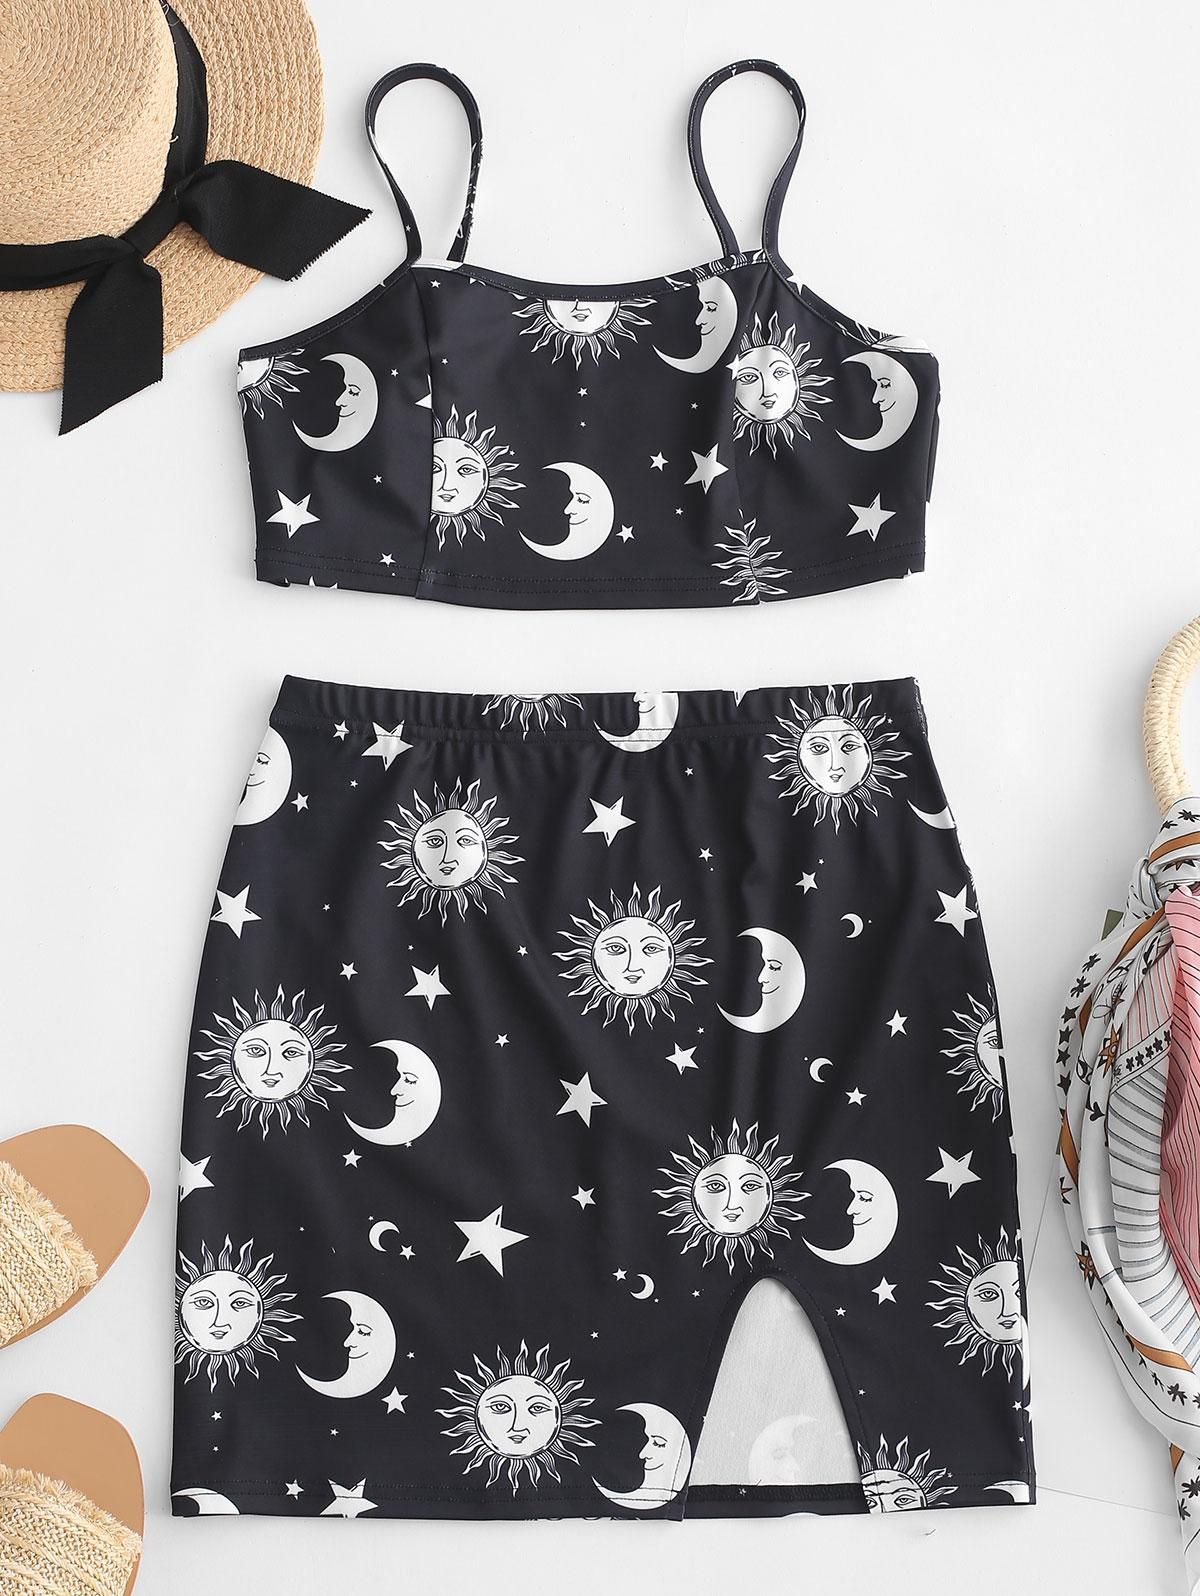 ZAFUL Cami Star Sun And Moon Top And Slit Skirt Set, Black